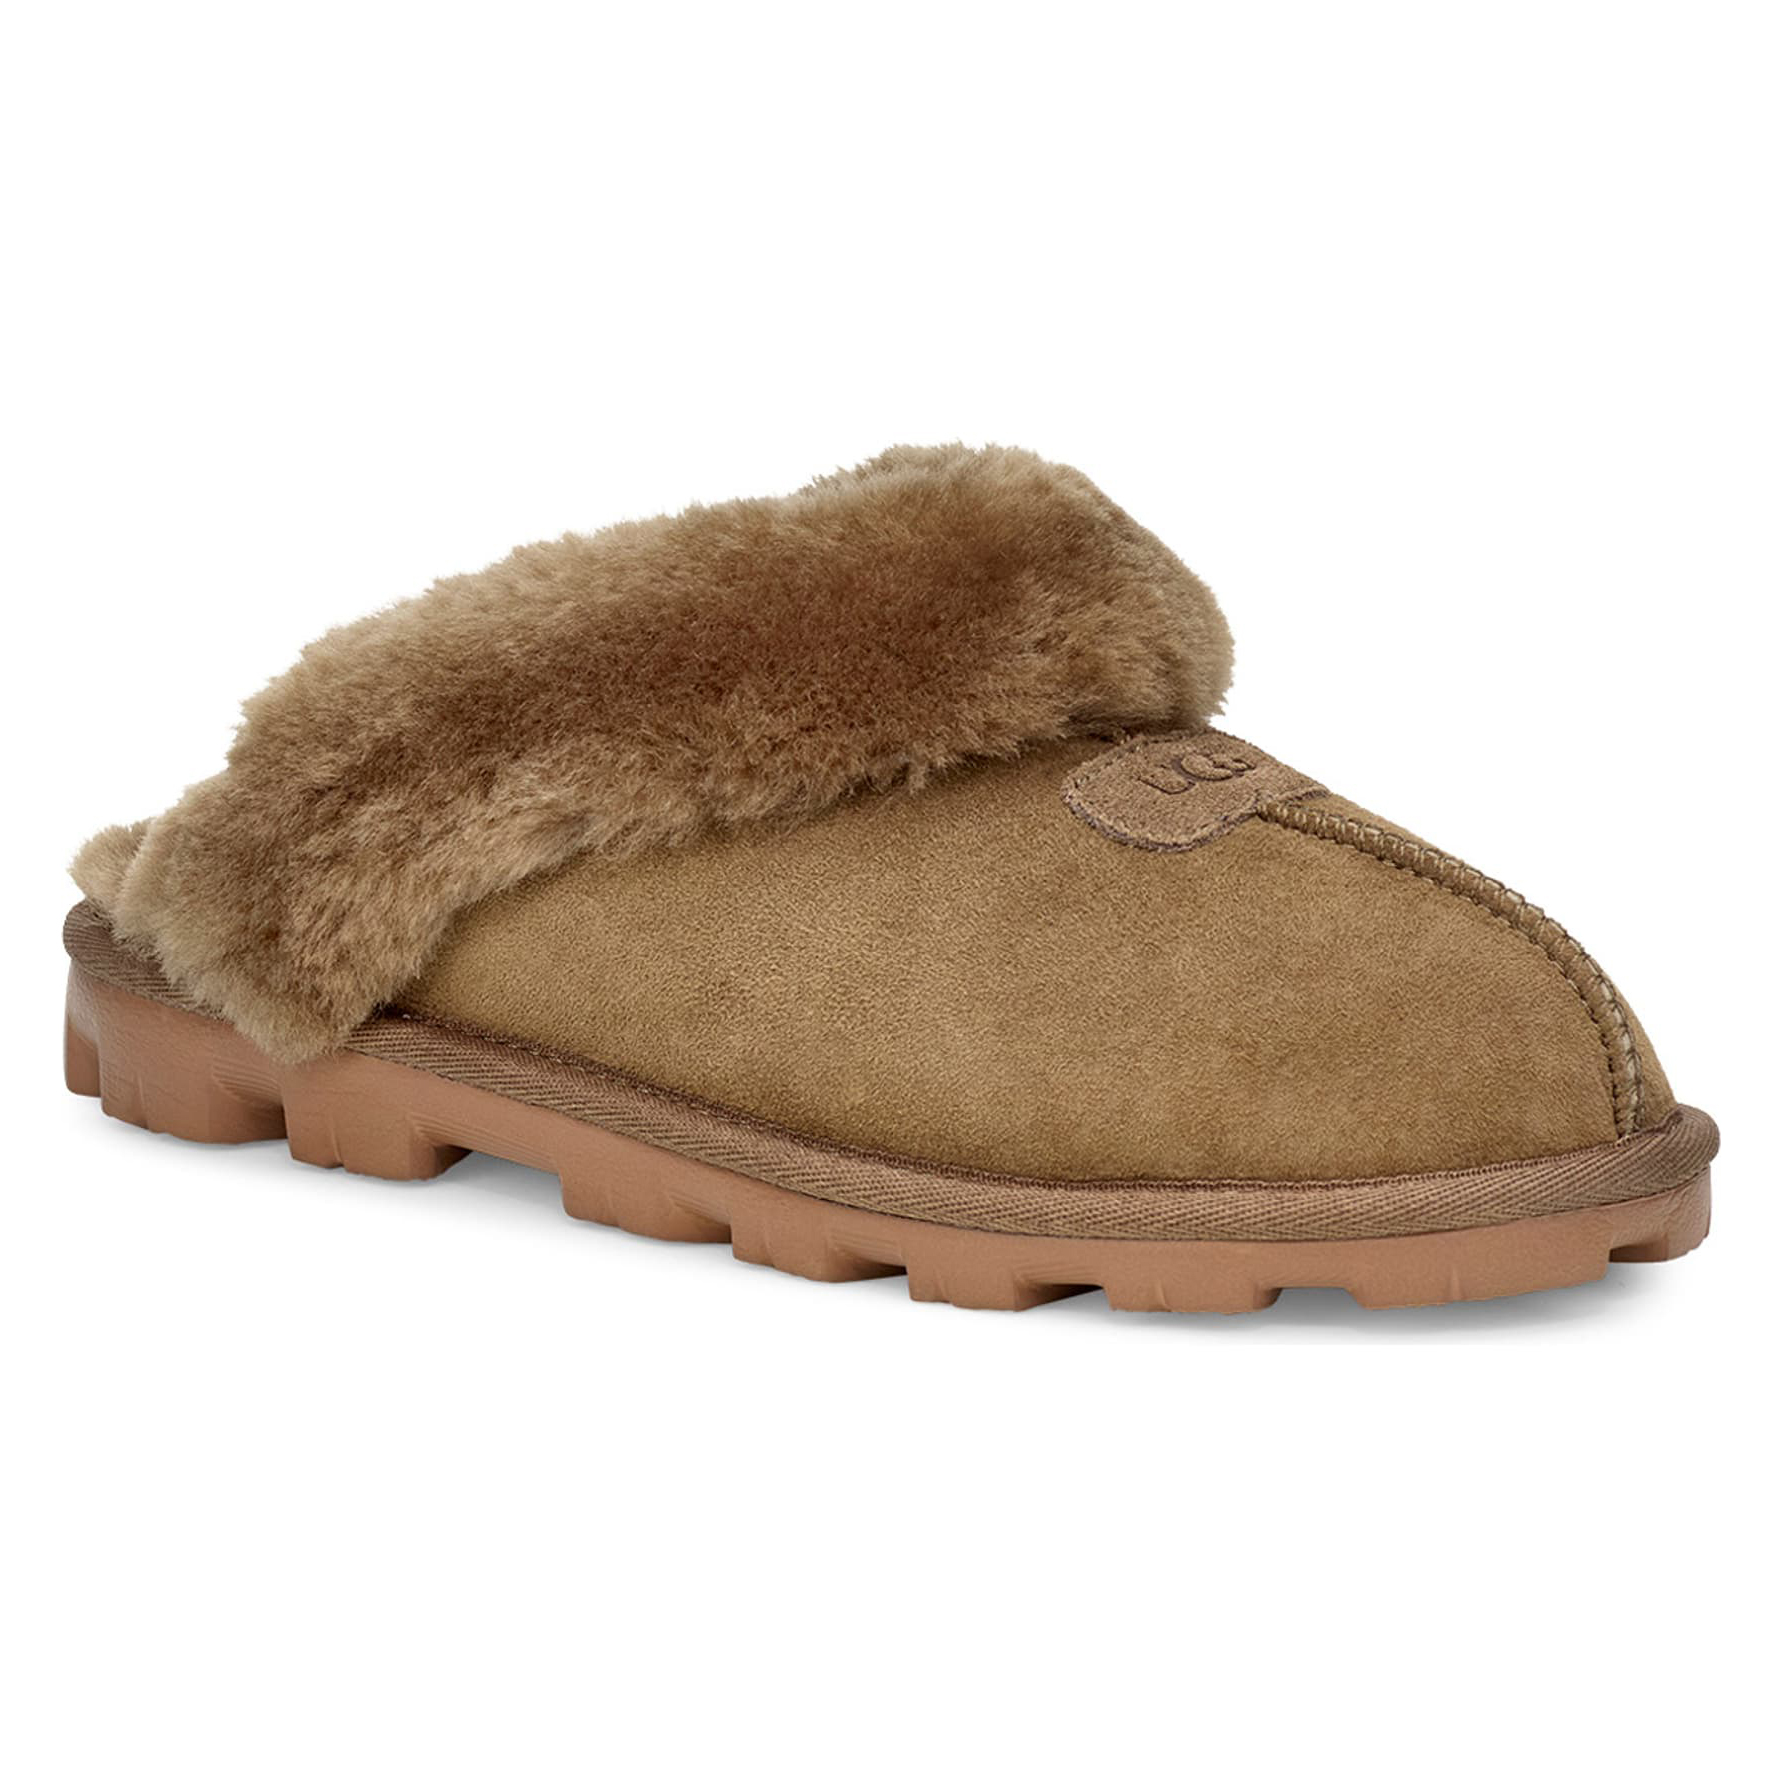 Ugg Genuine Shearling Slipper in Eucalyptus Spray